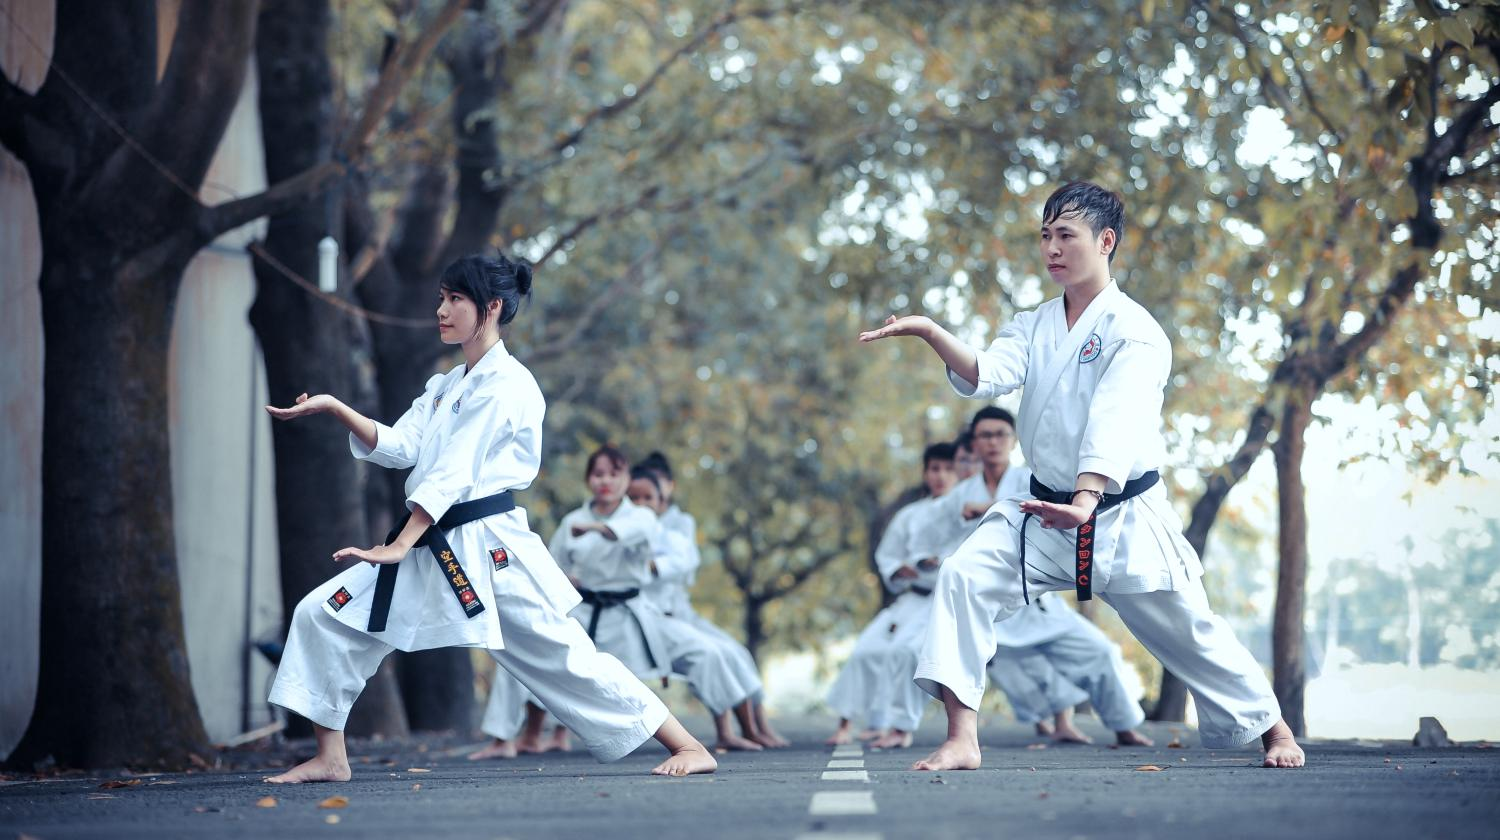 asian teens performing martial arts karate on the street | types of martial arts | different types of martial arts | Featured